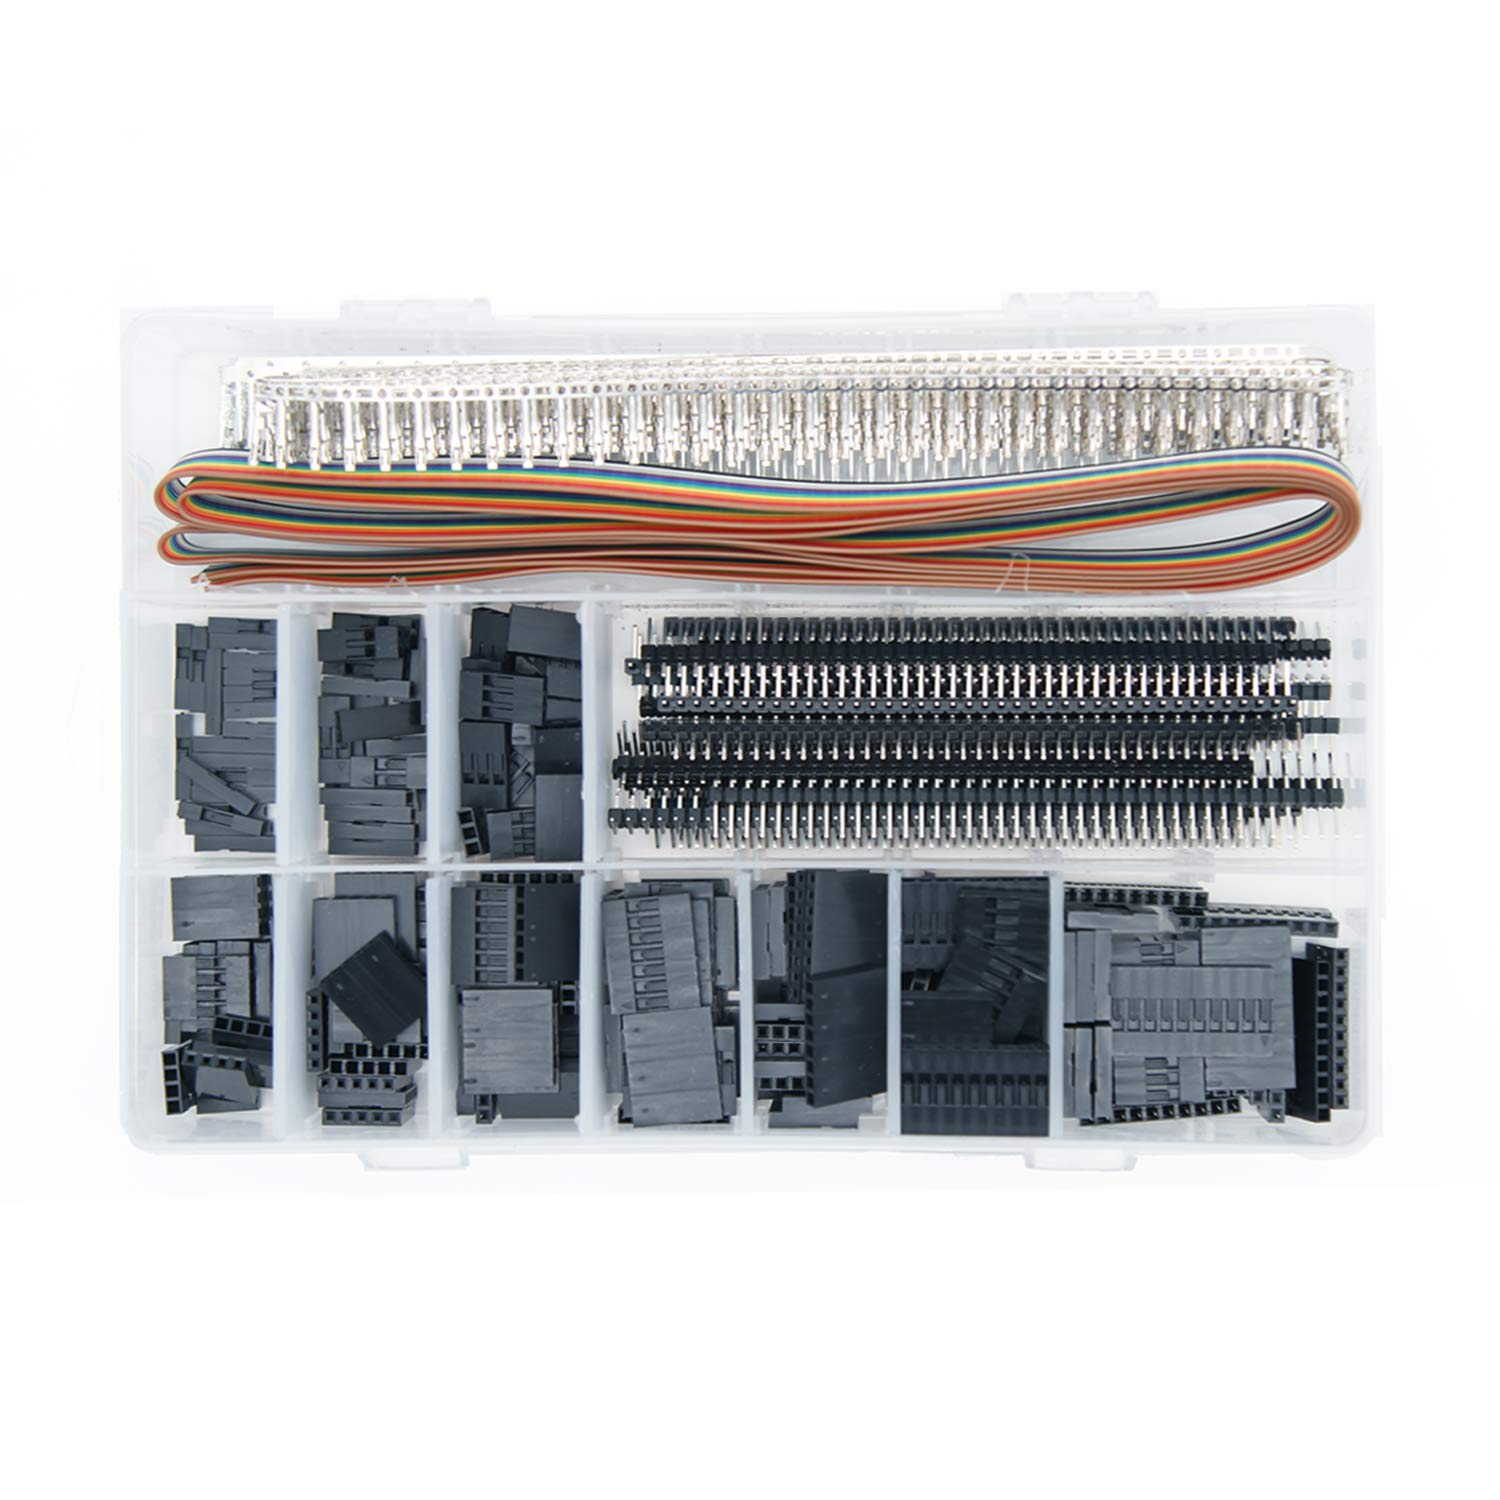 Necygoo Dupont Connector 1420PCS Dupont Connectors with IDC Cable Dupont Wire Connectors Include 1 to 20 P Connectors Male Female 2.54mm PCB Pin